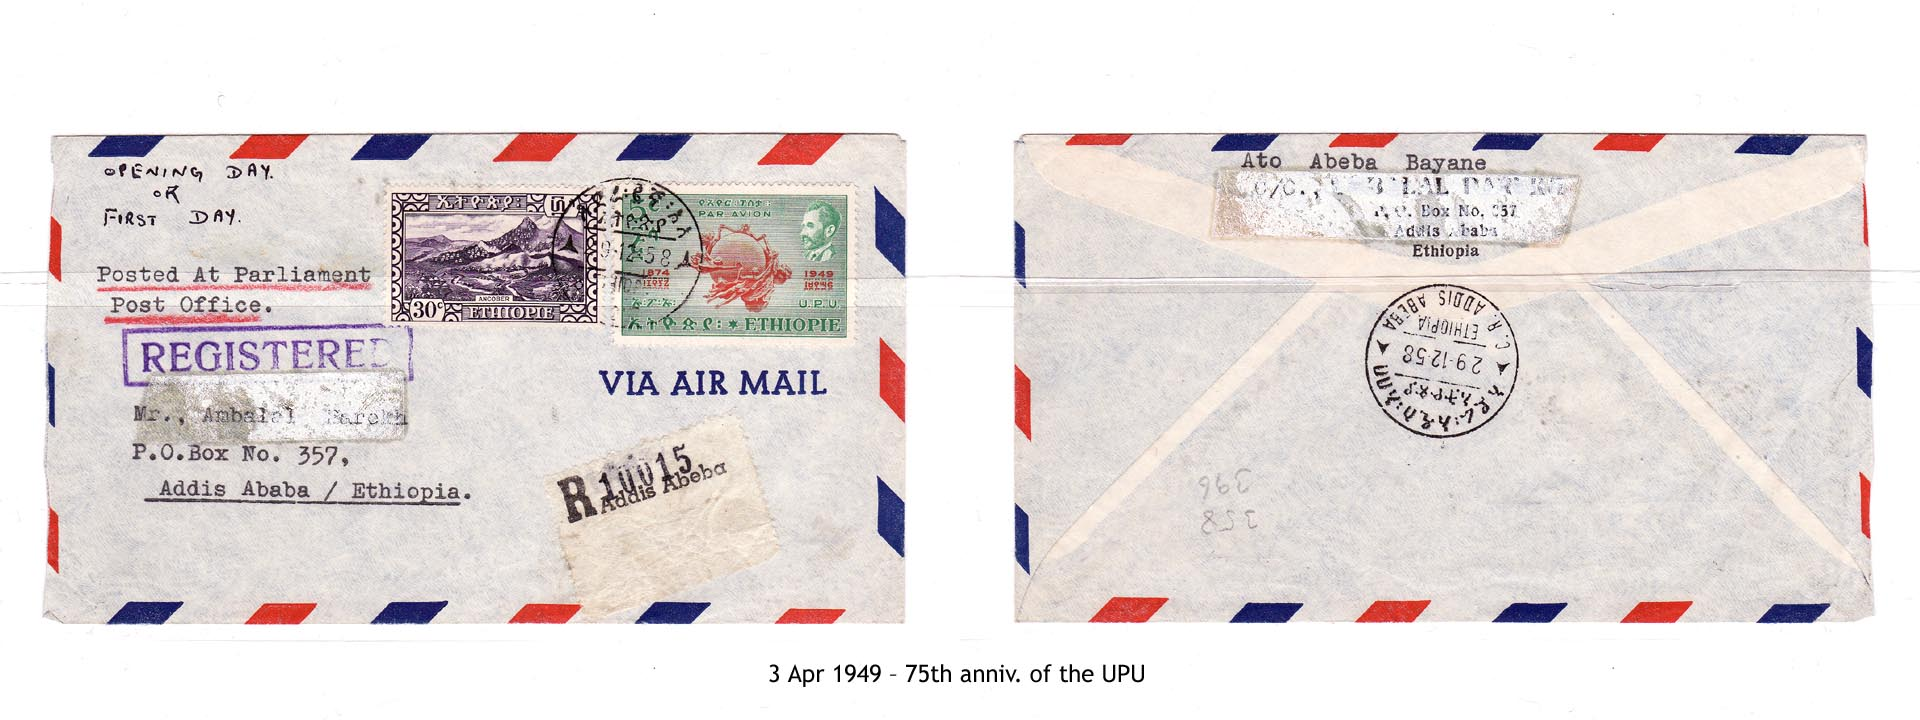 19500403 – 75th anniv. of the UPU